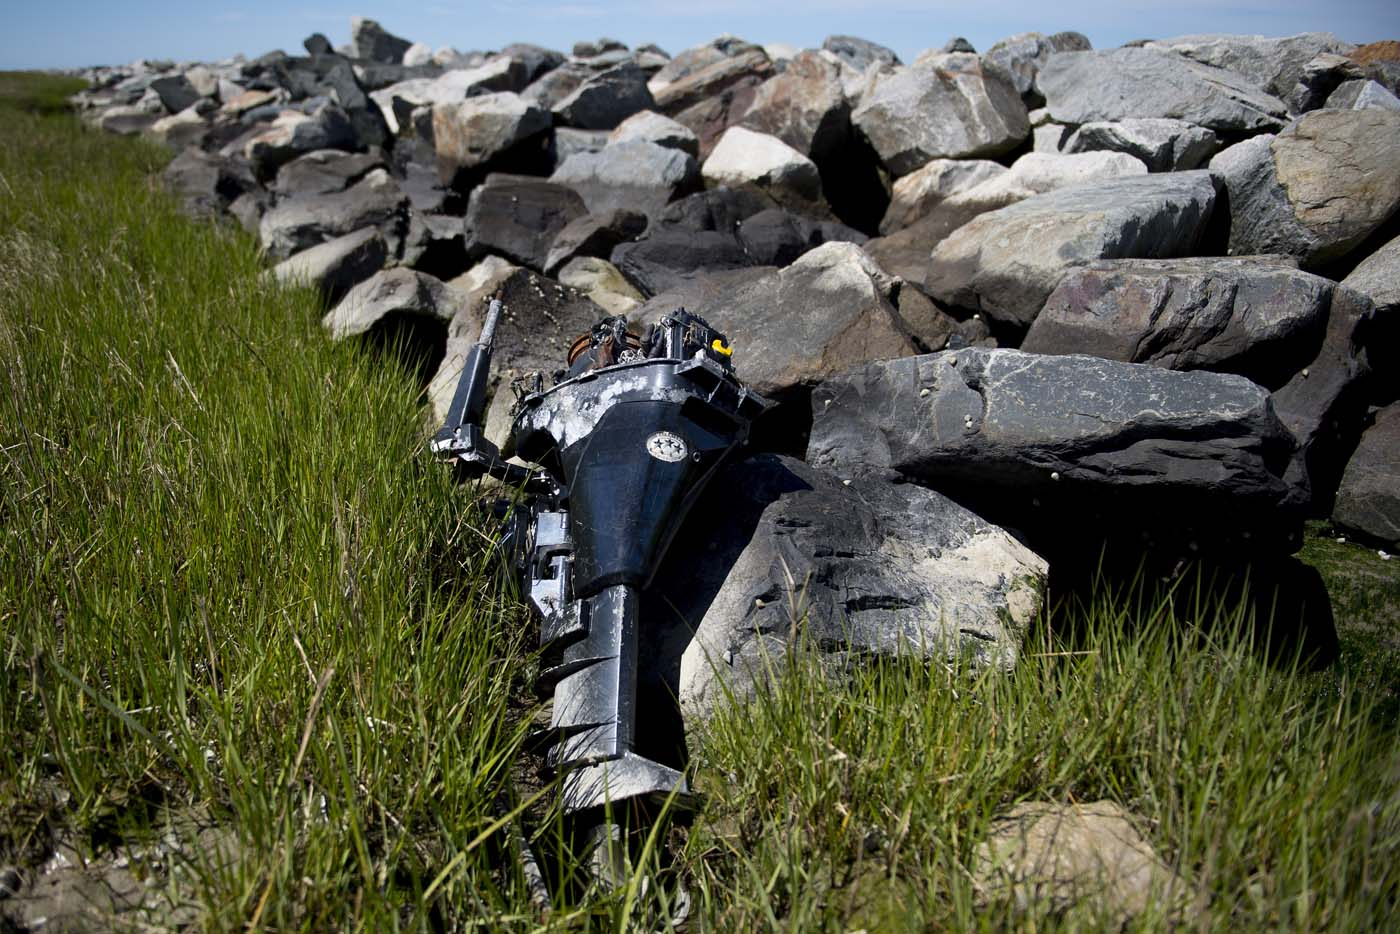 An abandoned outboard boat motor sits against the man-made sea wall that was engineered by the Army Corps of Engineers in 1999 to prevent erosion in Tangier, Virginia, May 15, 2017, where climate change and rising sea levels threaten the inhabitants of the slowly sinking island. Now measuring 1.2 square miles, Tangier Island has lost two-thirds of its landmass since 1850. If nothing is done to stop the erosion, it may disappear completely in the next 40 years. / AFP PHOTO / JIM WATSON